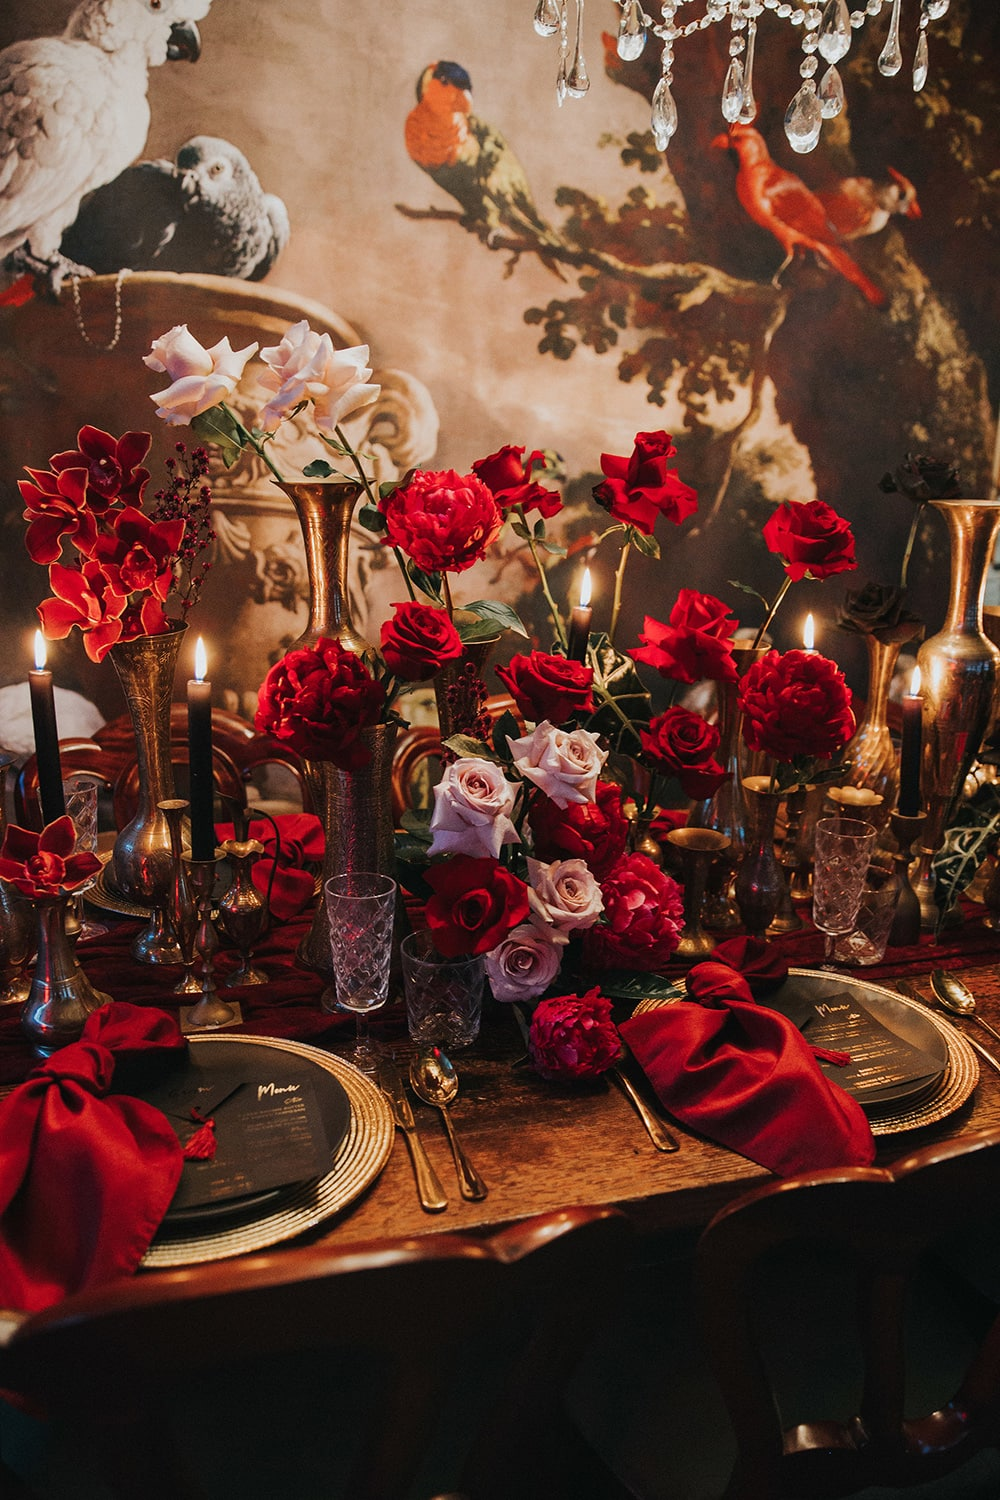 Modern Red & Pink Wedding Ideas | A moody candlelit wedding reception table setting in front of an ornate wall art which features illustrations of exotic birds. The table is decorated with gold vessels of different shapes and sizes filled with clusters of red and pink flowers, gold charger plates and cutlery, black taper candles, plateware and menus, crystal glassware and knotted red napkins. | Photography: White Fox Studios via The Wedding Playbook